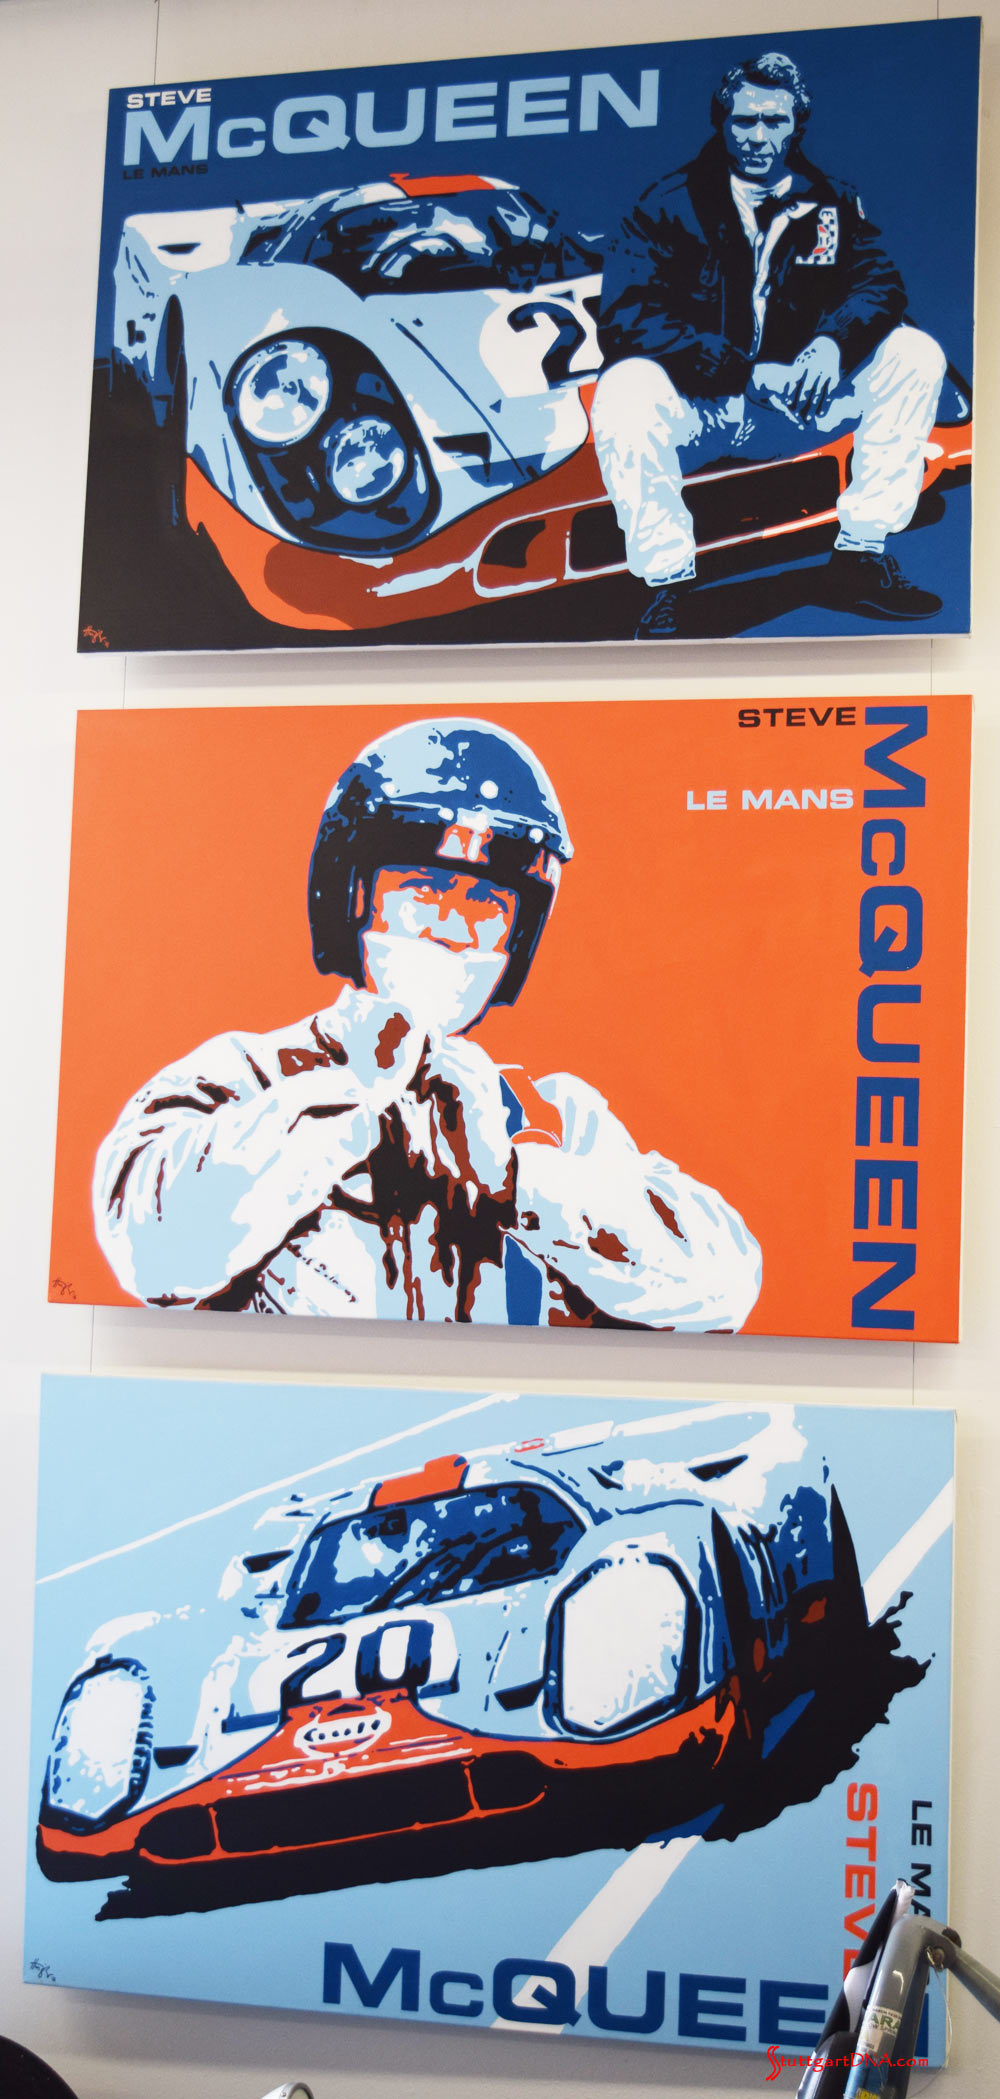 """2017 Porsche L.A. Literature, Toy and Memorabilia Meet Weekend: The Steve McQueen Le Mans Trilogy, 2016. By Nicolas Hunziker, Switzerland. Three original paintings, acrylic on canvas, 60 inches by 40 inches each. The paintings each depict stylized moments from the movie """"Le Mans."""" Commissioned by Chadwick McQueen and the Terry McQueen Testamentary Trust. List Prices: """"Between Scenes"""" Painting No. 1, $75,000; """"Just Like Jo"""" Painting No. 2, $75,000 (reserved); and """"No More Waiting"""" Painting No. 3, $75,000."""